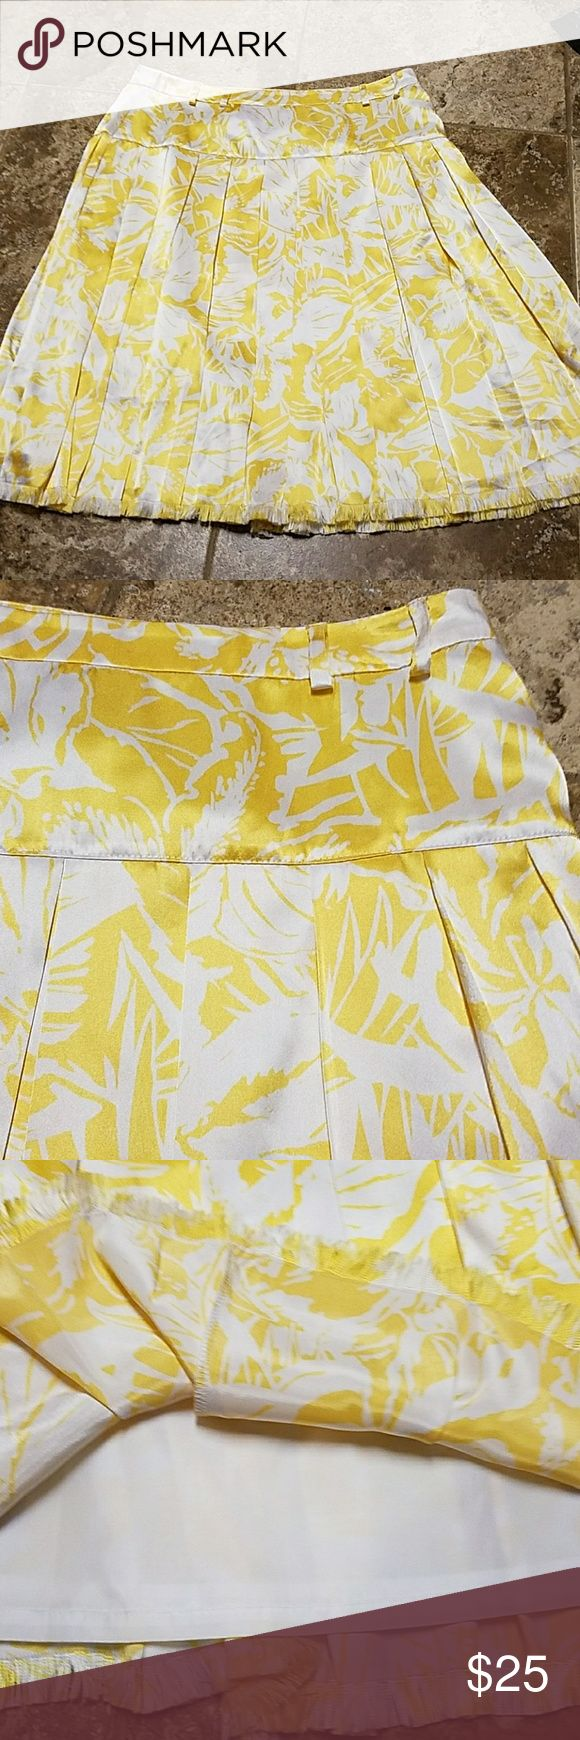 Yellow pleated skirt I loved this skirt!  I lost weight,  no longer fits.  Only was able to wear once to a wedding.  Has belt loops but no belt.  17 inches across the waist and 25 inches long.  Lots of flow and movement. Oscar de la Renta Skirts Midi